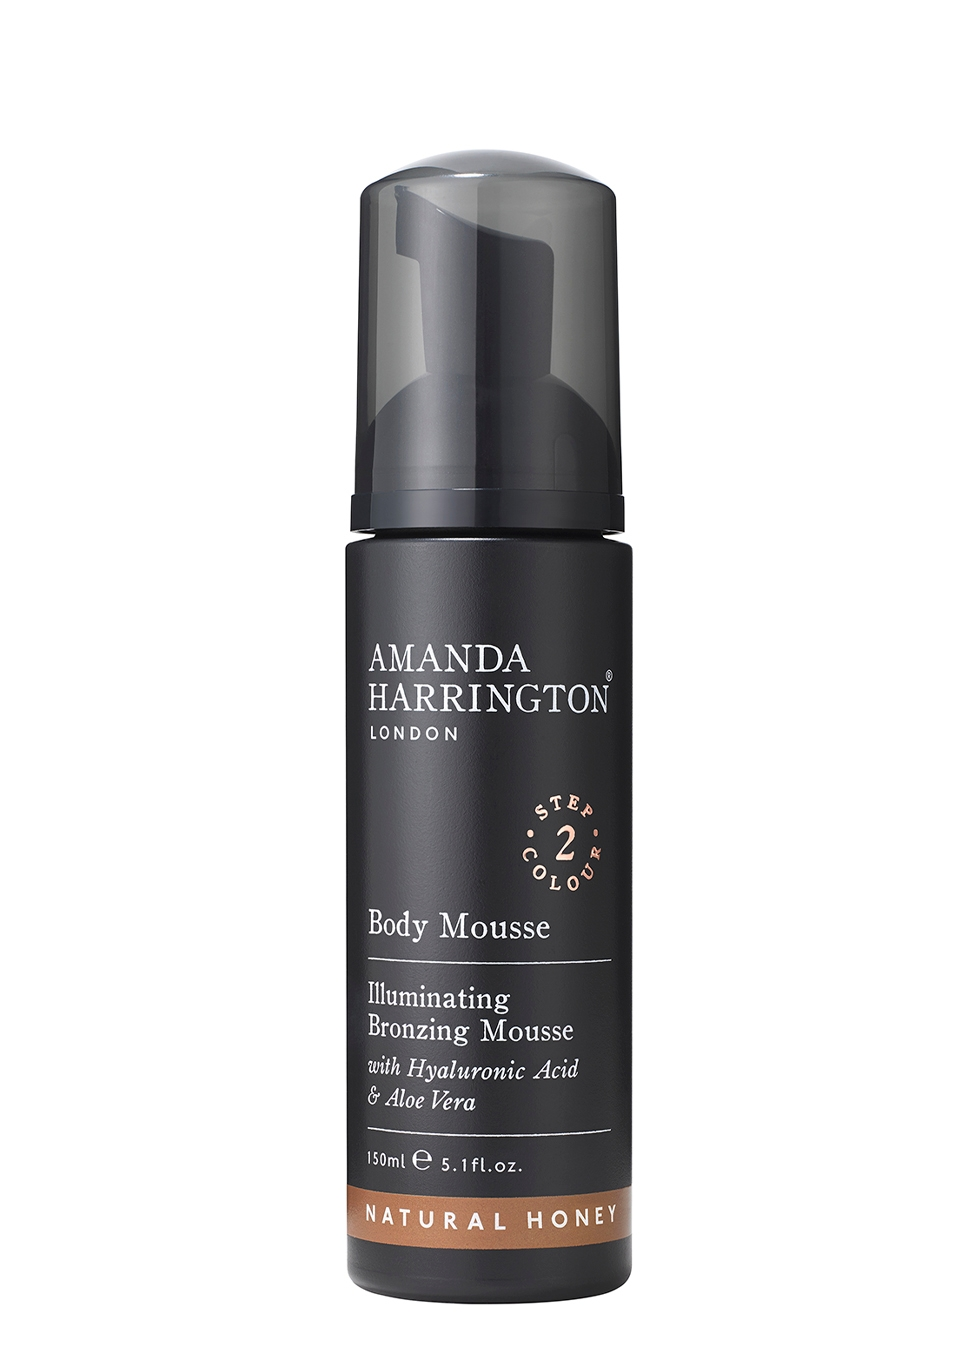 Body Mousse